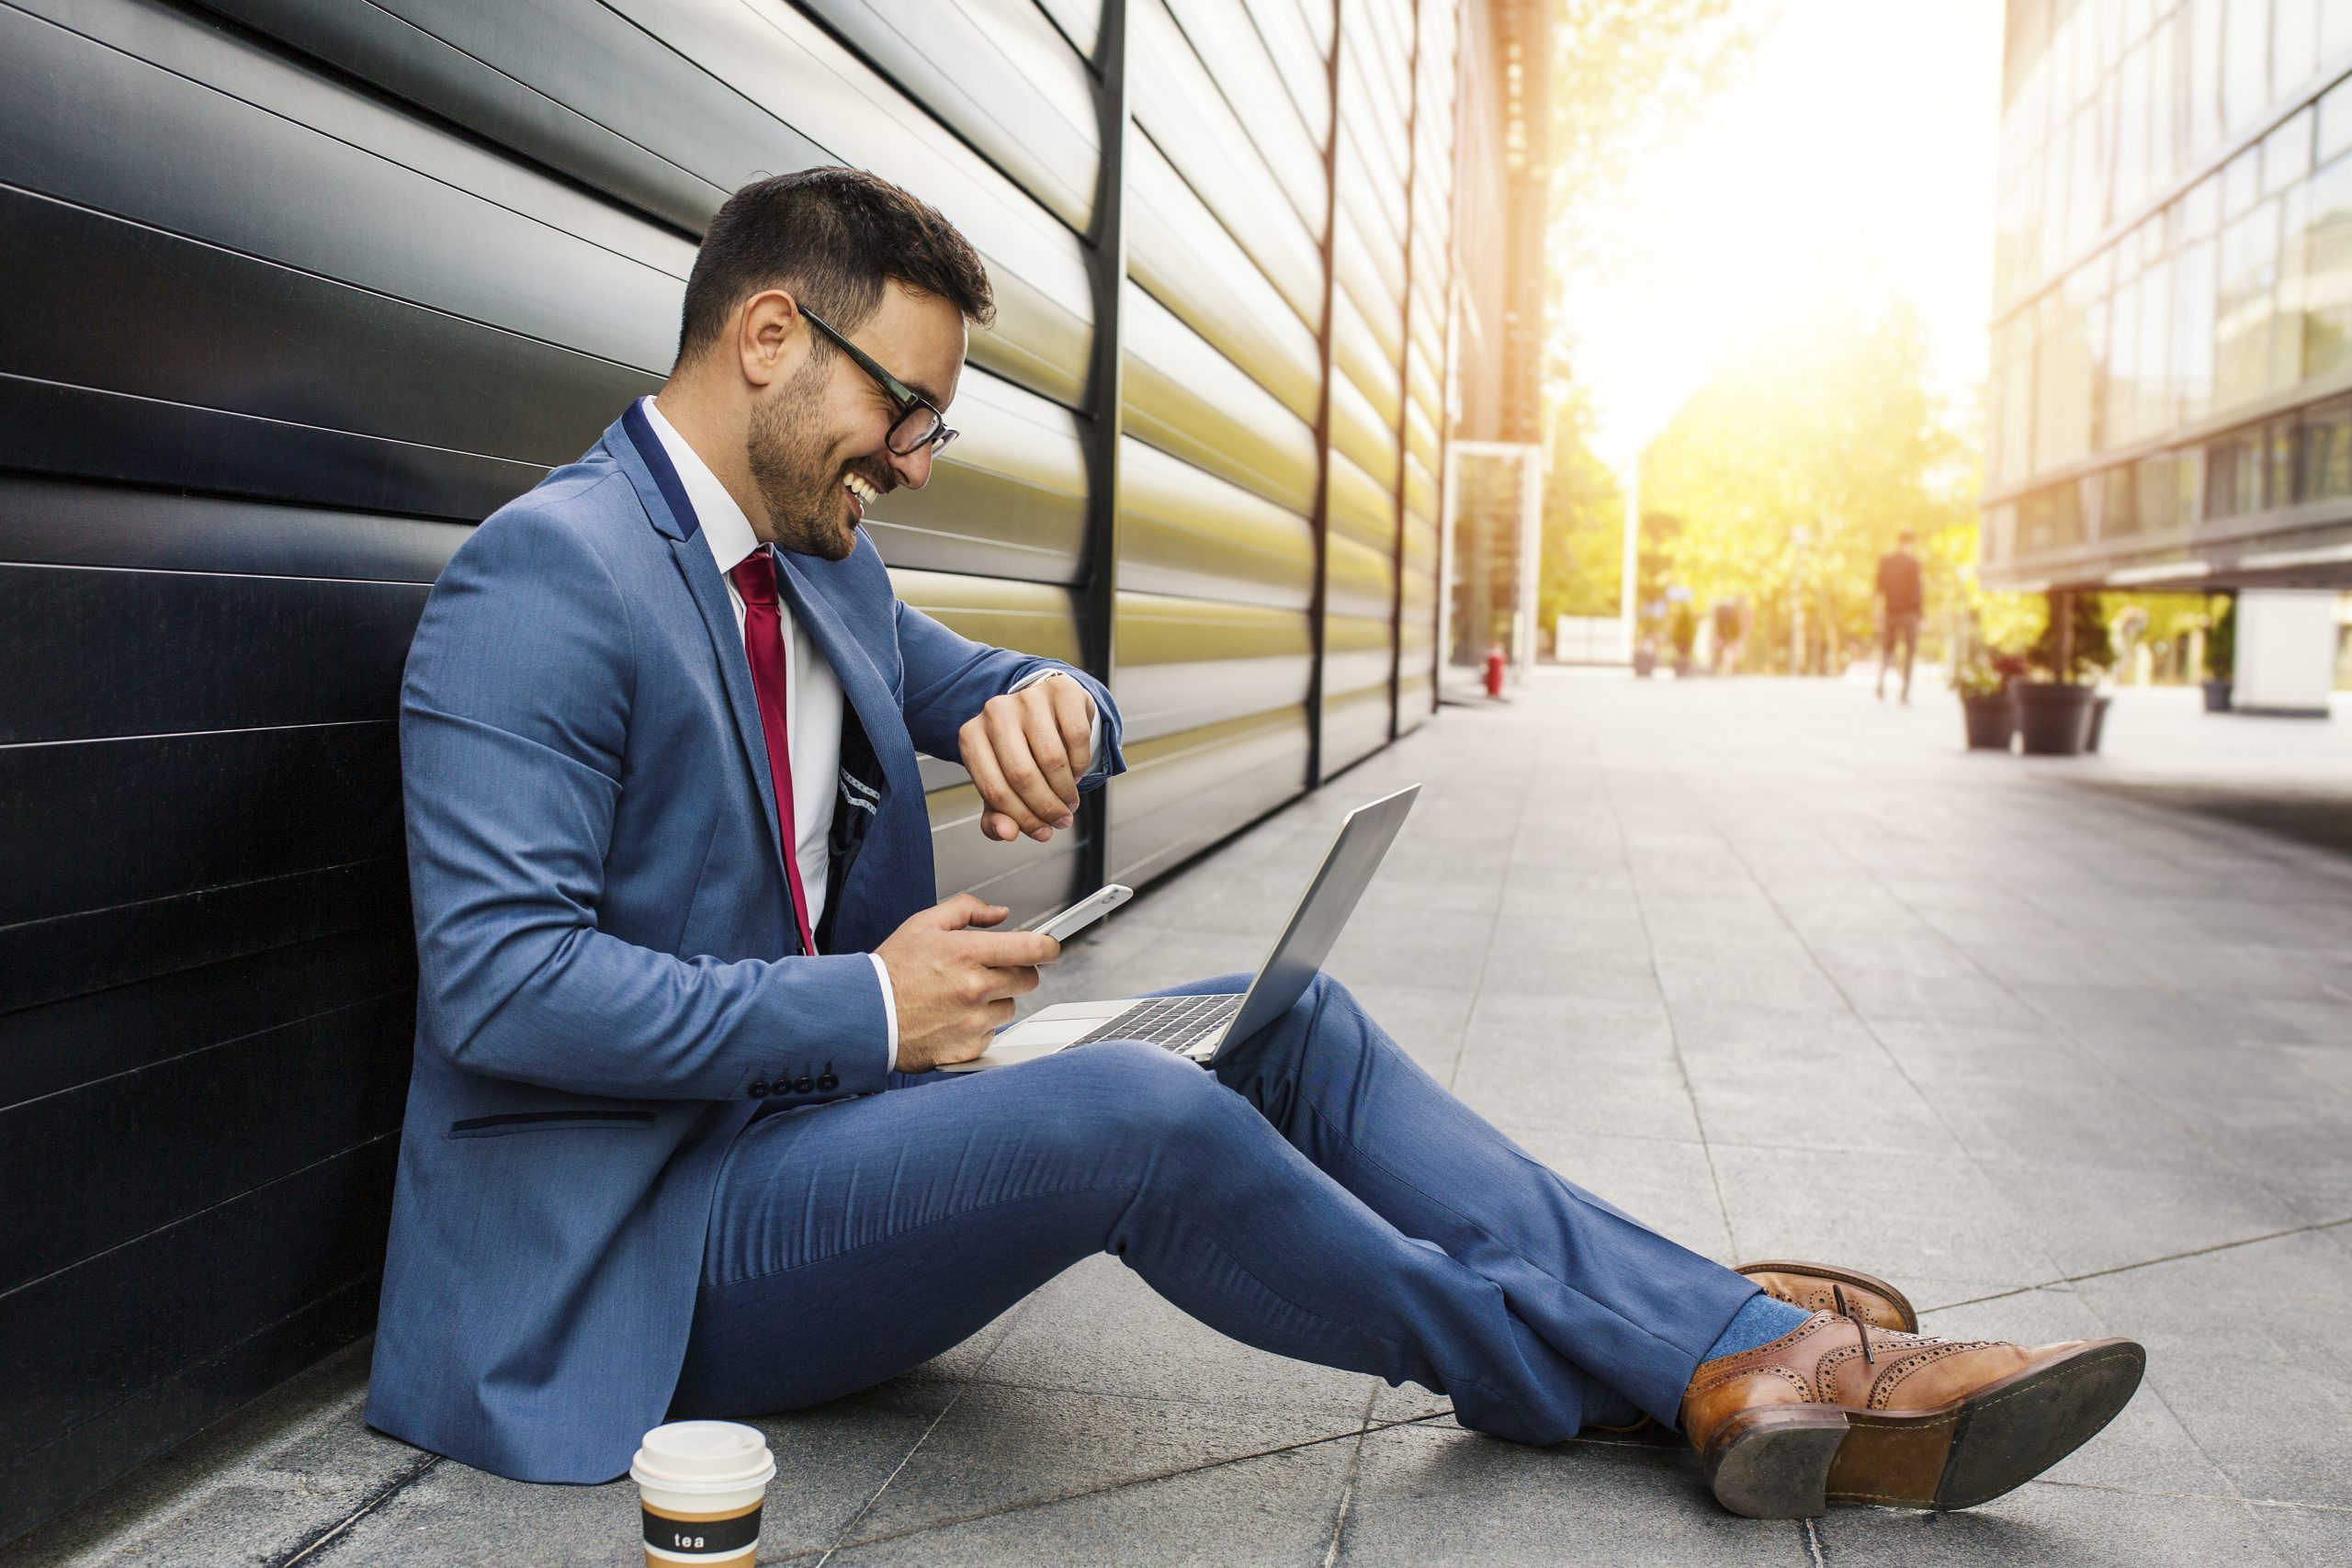 Man in suit working on laptop using business internet connection